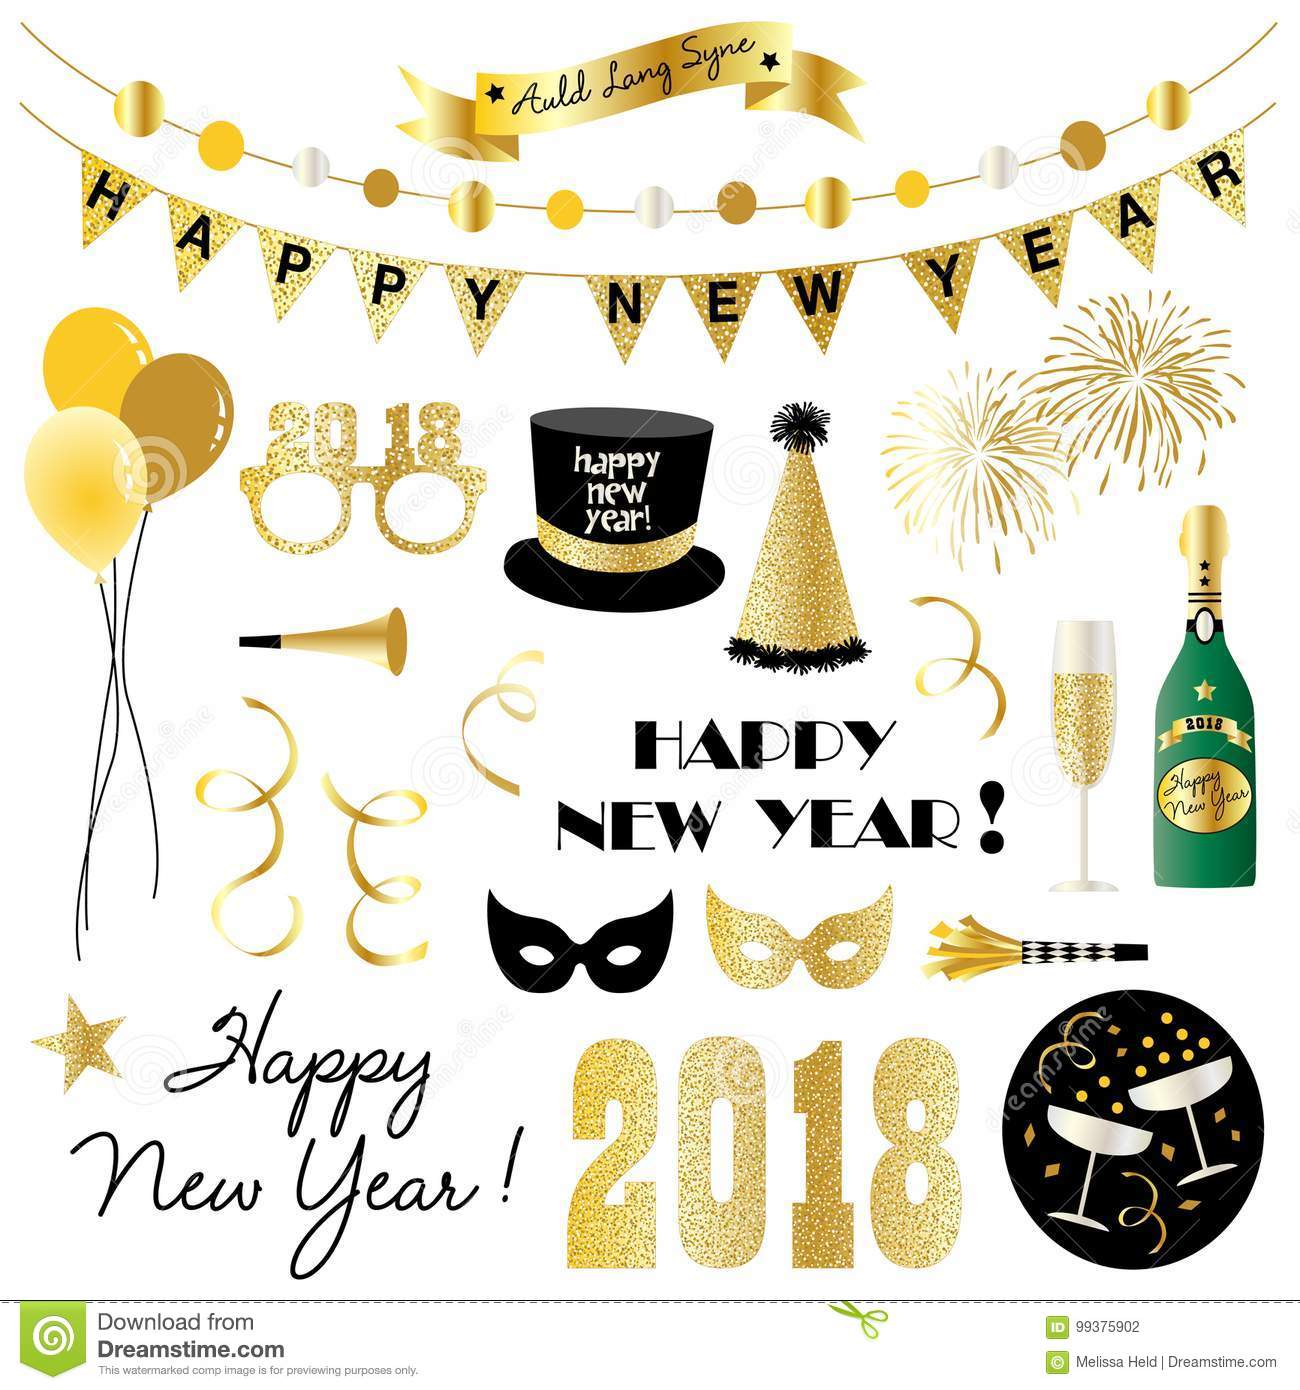 New years eve clipart stock vector. Illustration of 2018.